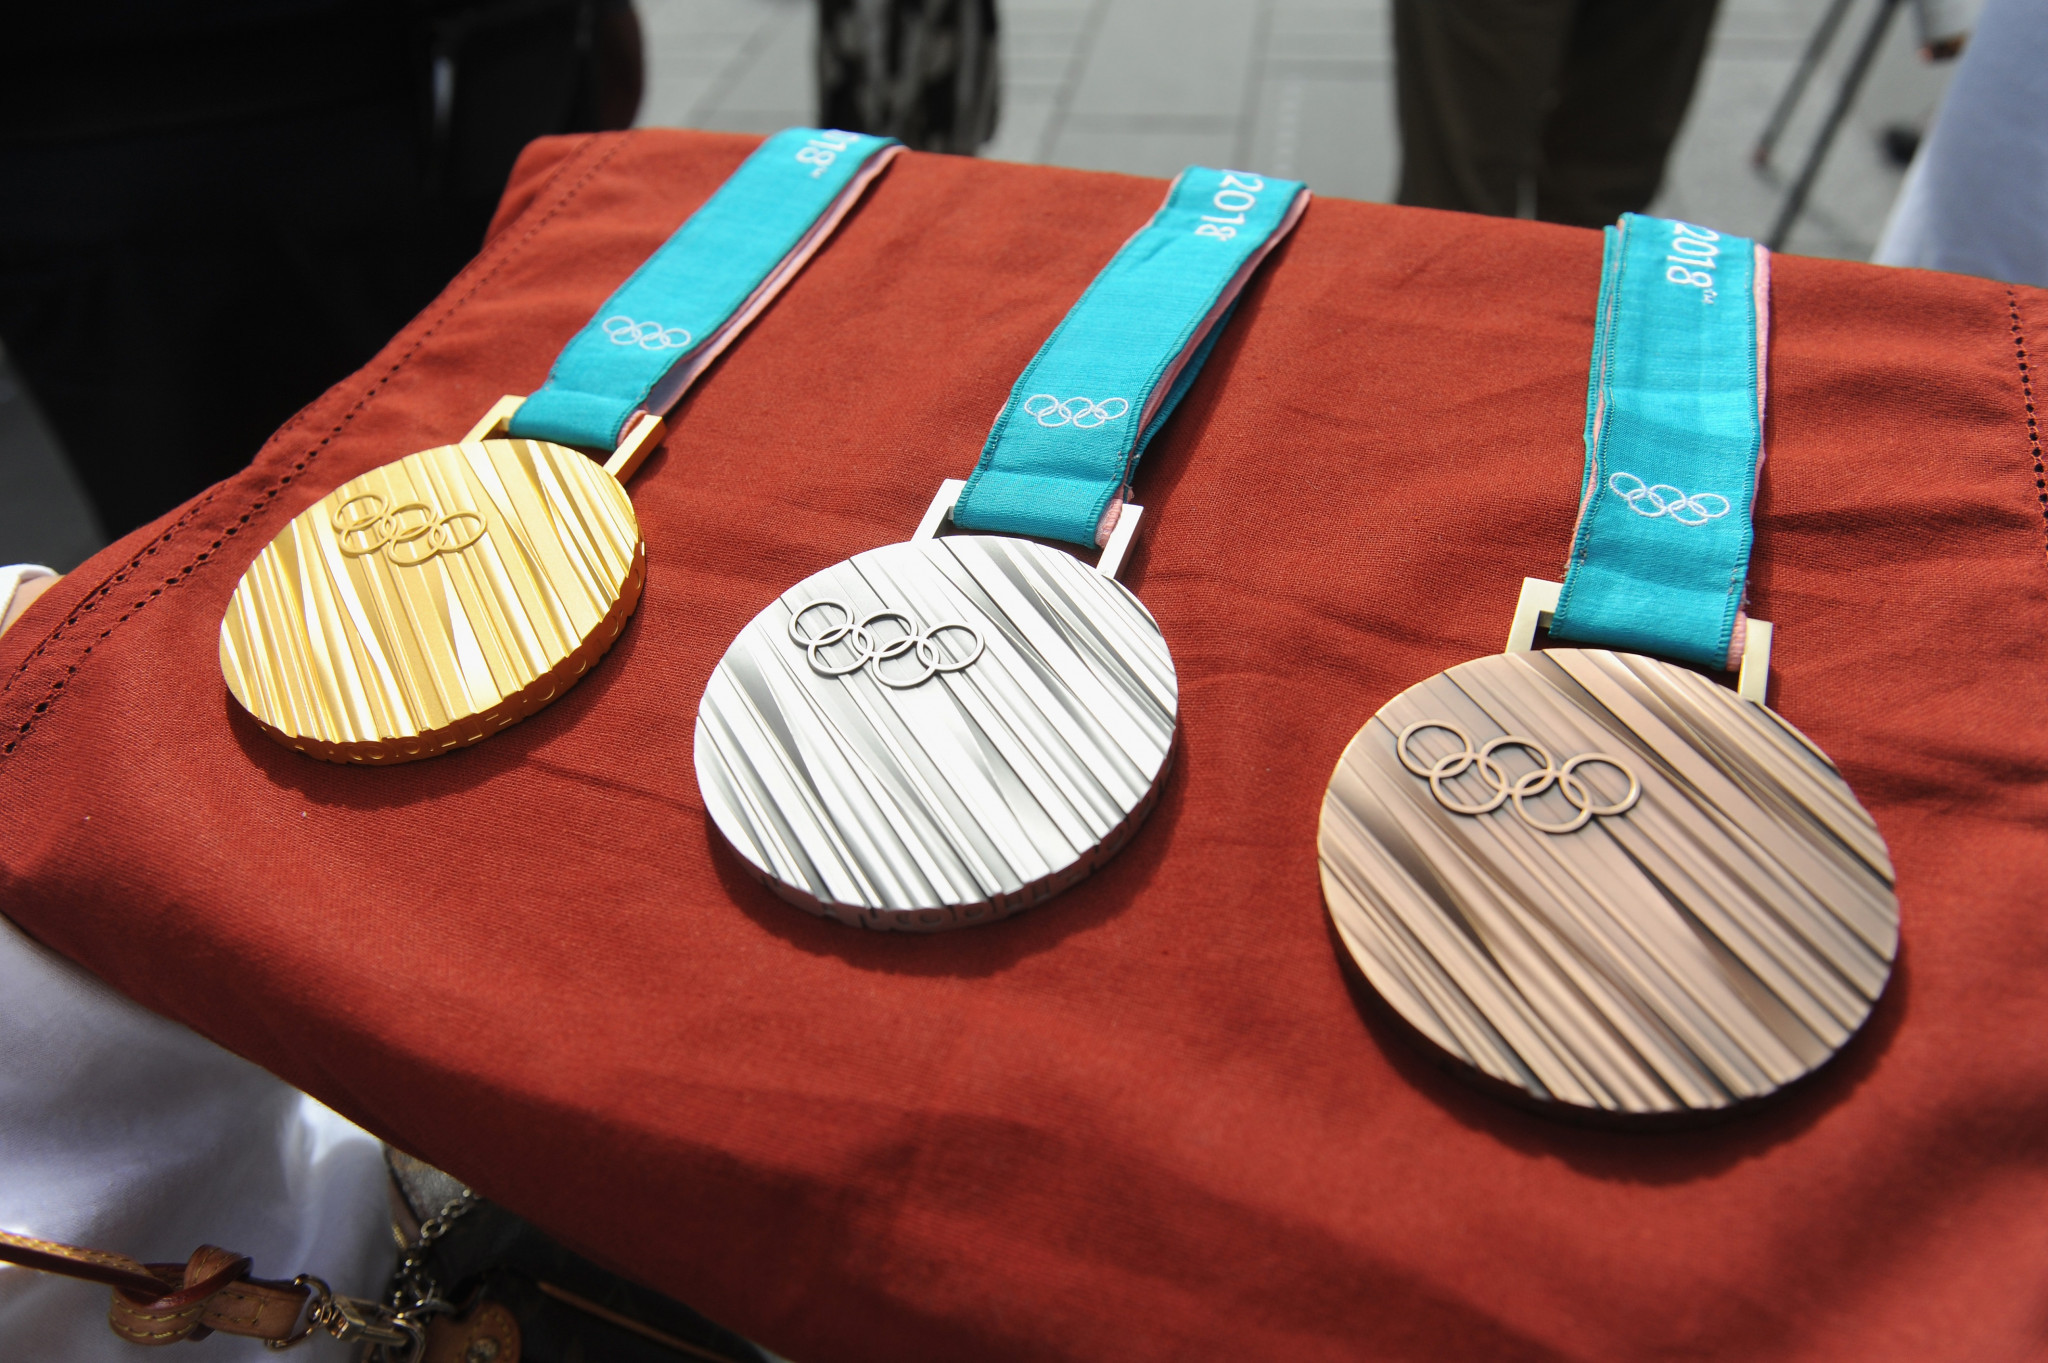 Sixty per cent of Russians believe that the country will achieve a top-three finish in the medal table for the Pyeongchang 2018 Winter Olympic Games ©Getty Images